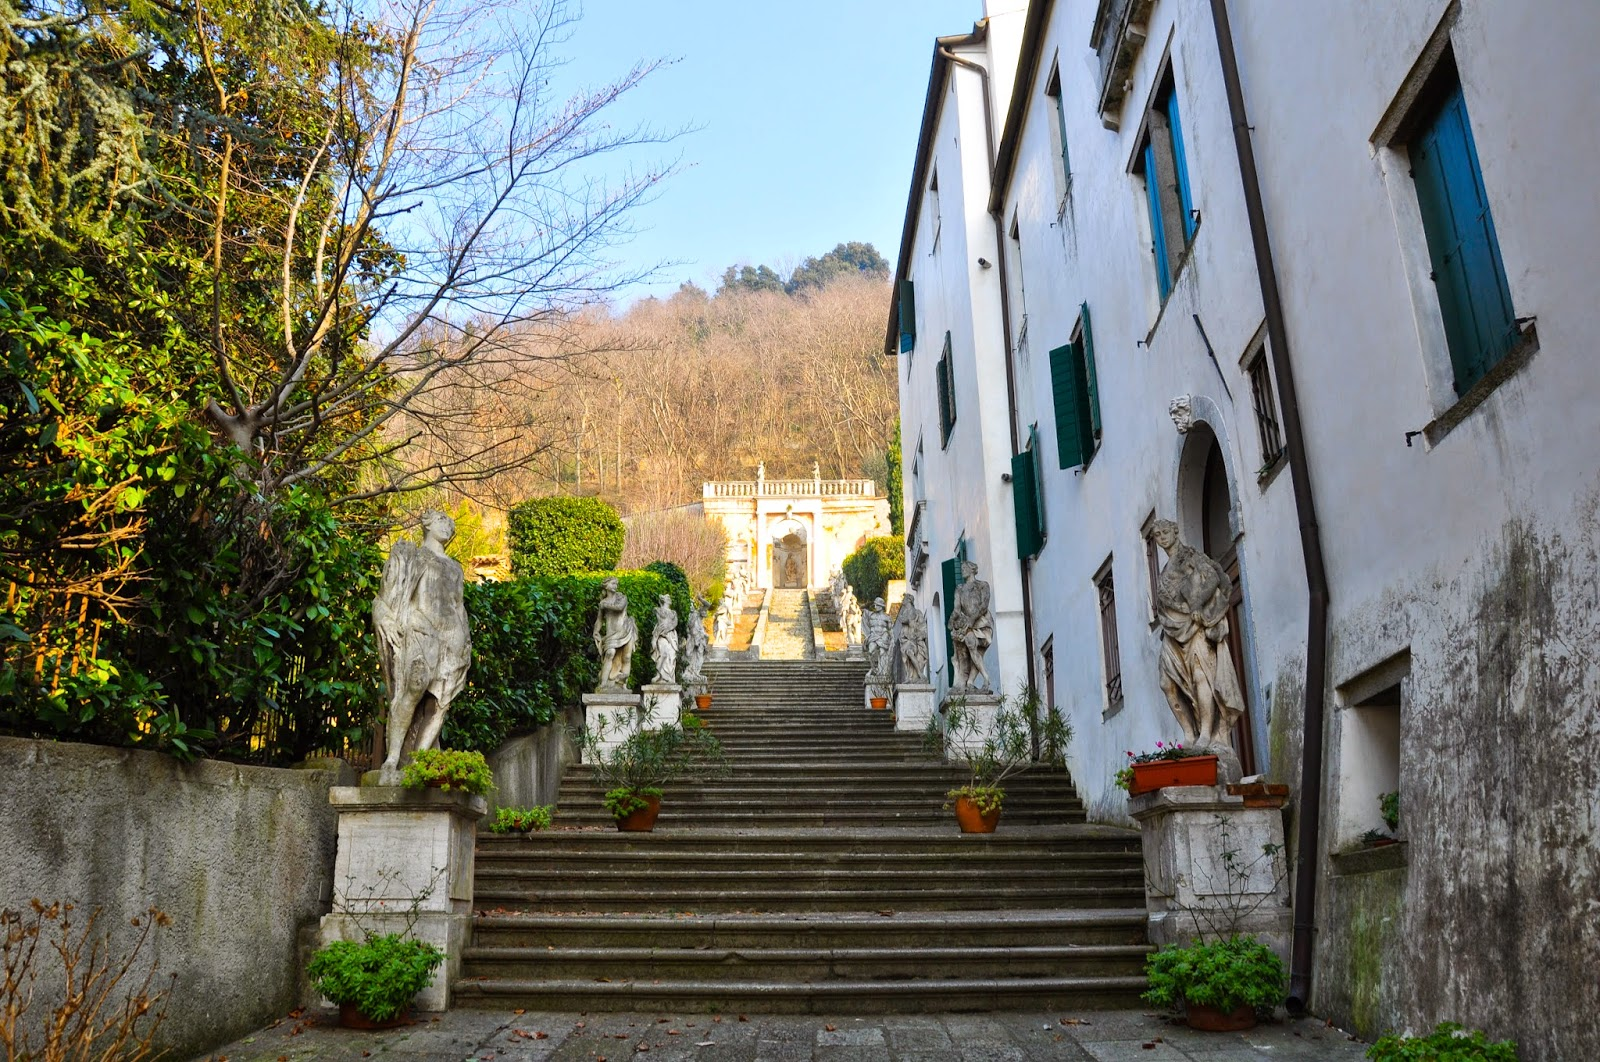 The stairs, Monselice, Colli Euganei